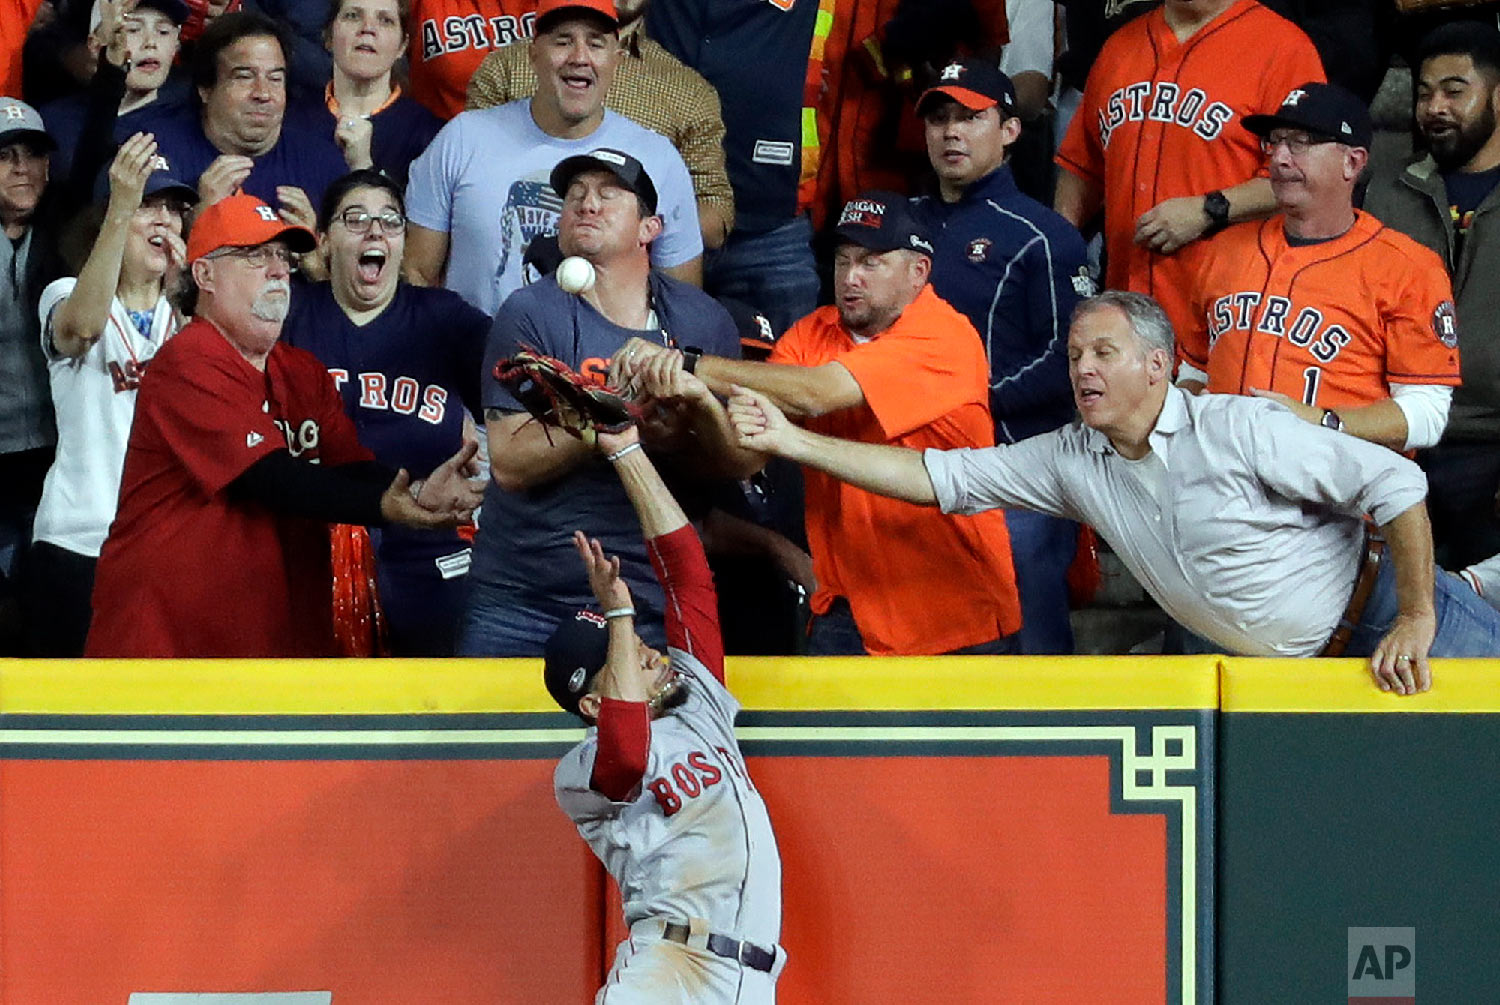 Fans interfere with Boston Red Sox right fielder Mookie Betts trying to catch a ball hit by Houston Astros' Jose Altuve during the first inning in Game 4 of a baseball American League Championship Series on Oct. 17, 2018, in Houston. Altuve was called out. (AP Photo/Frank Franklin II)